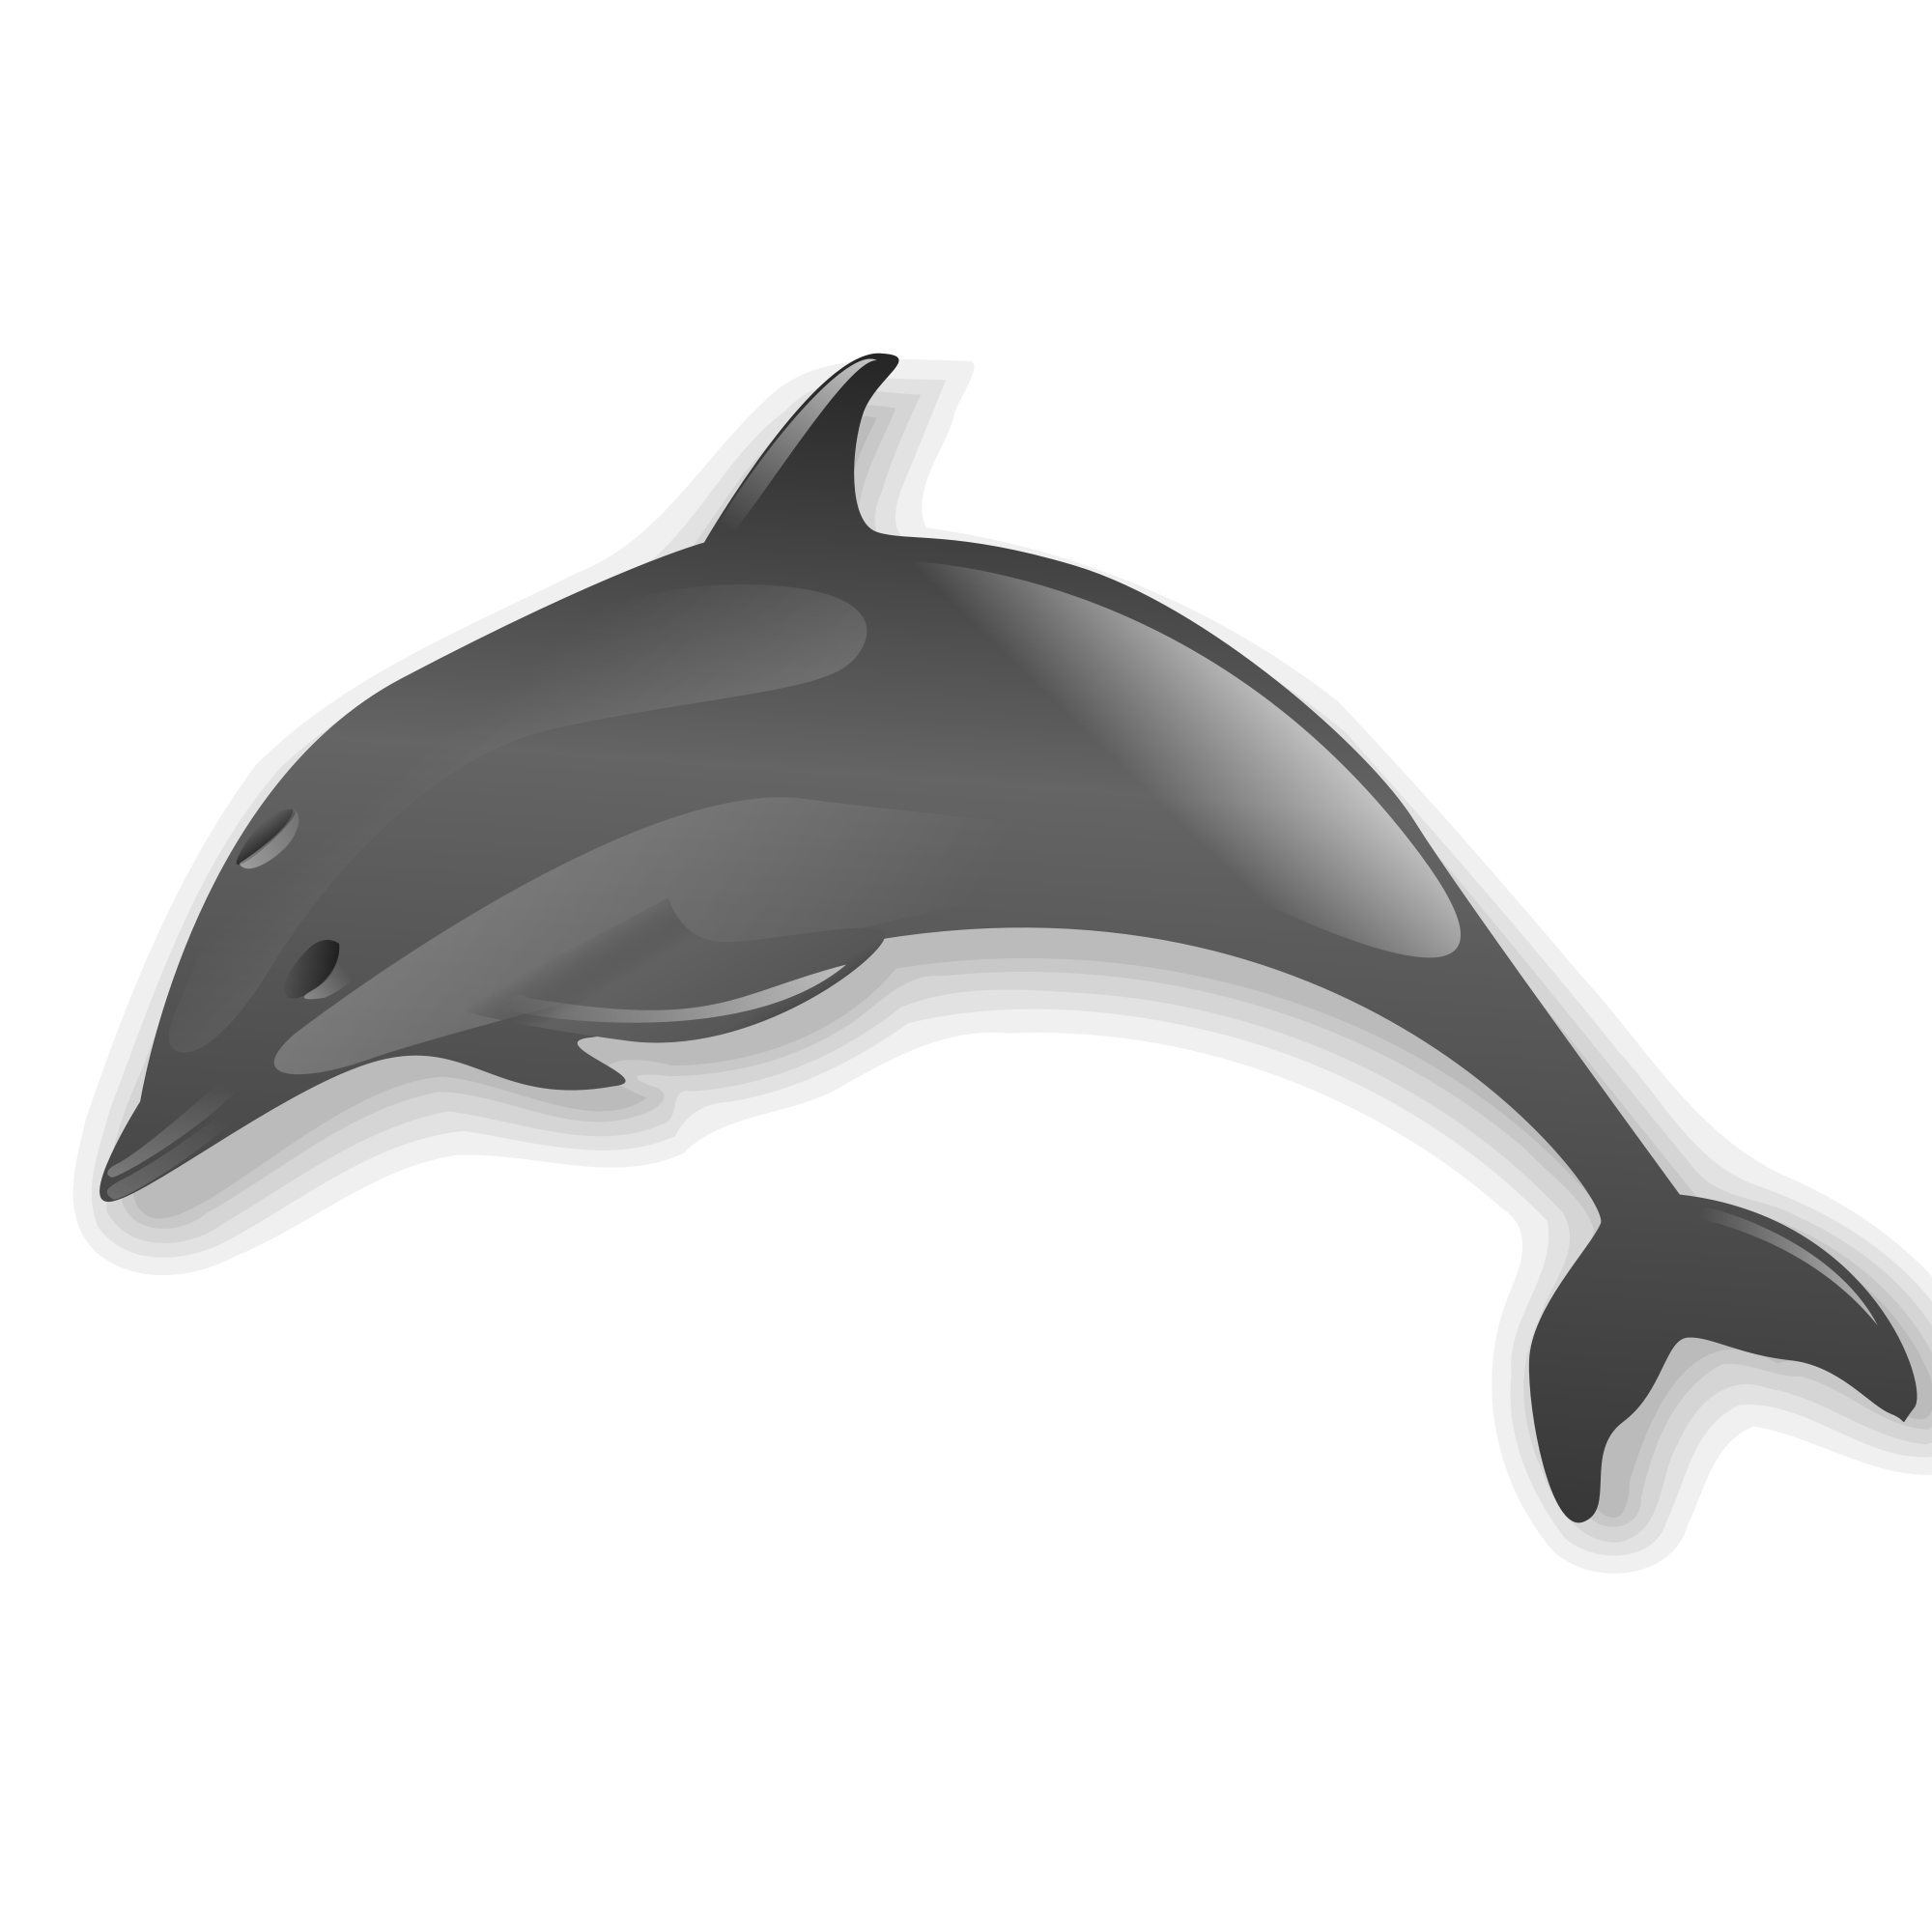 Clipart dolphin file. Svg wikimedia commons open